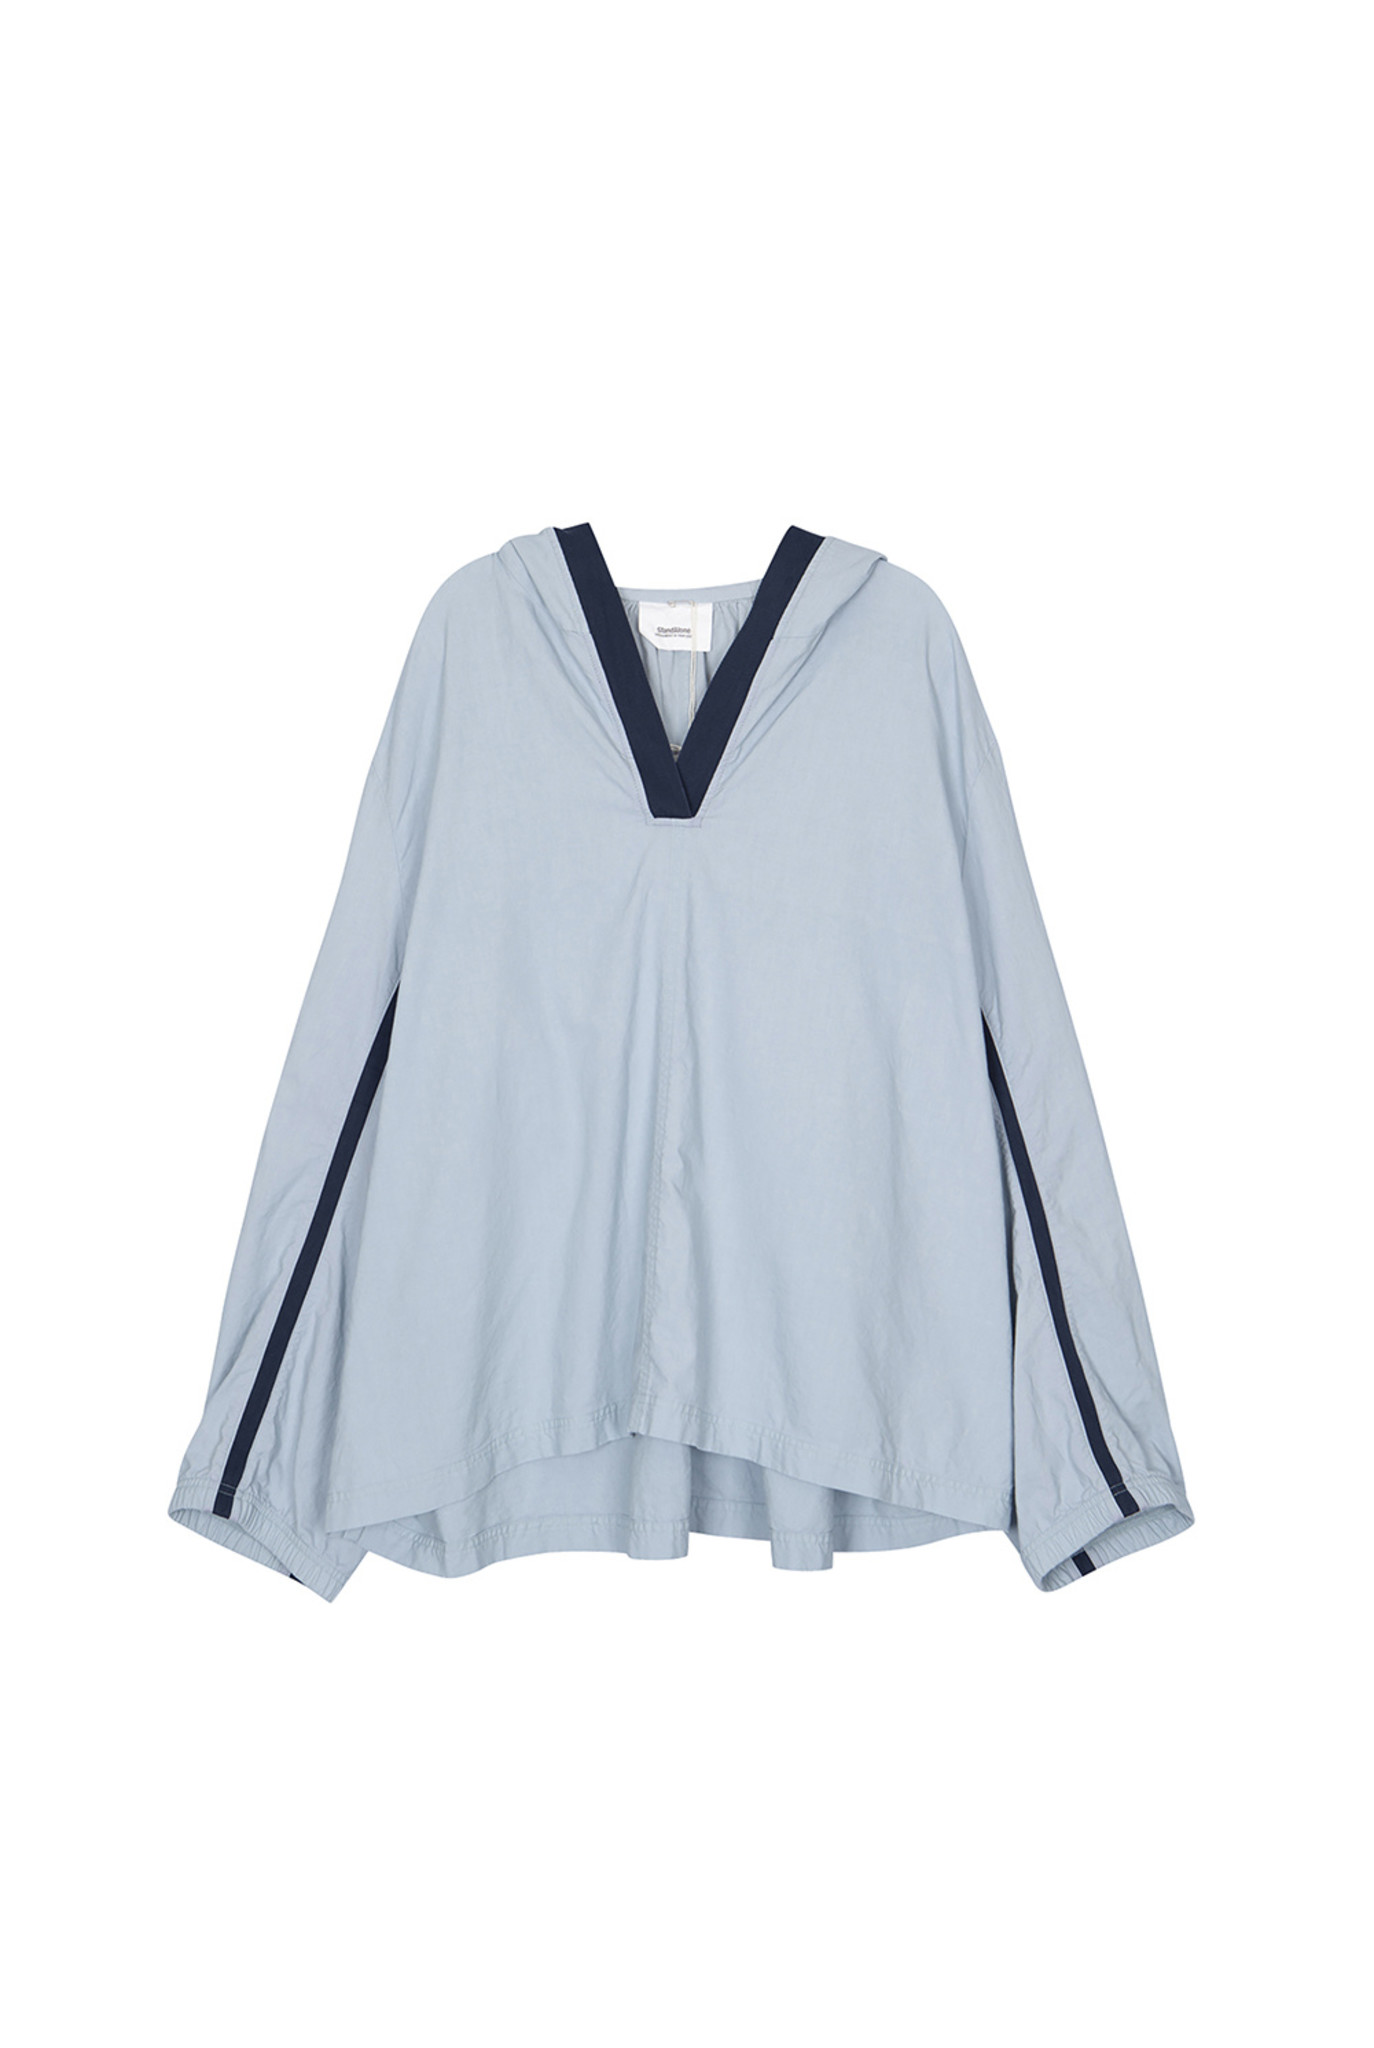 Hooded shirt light blue and navy